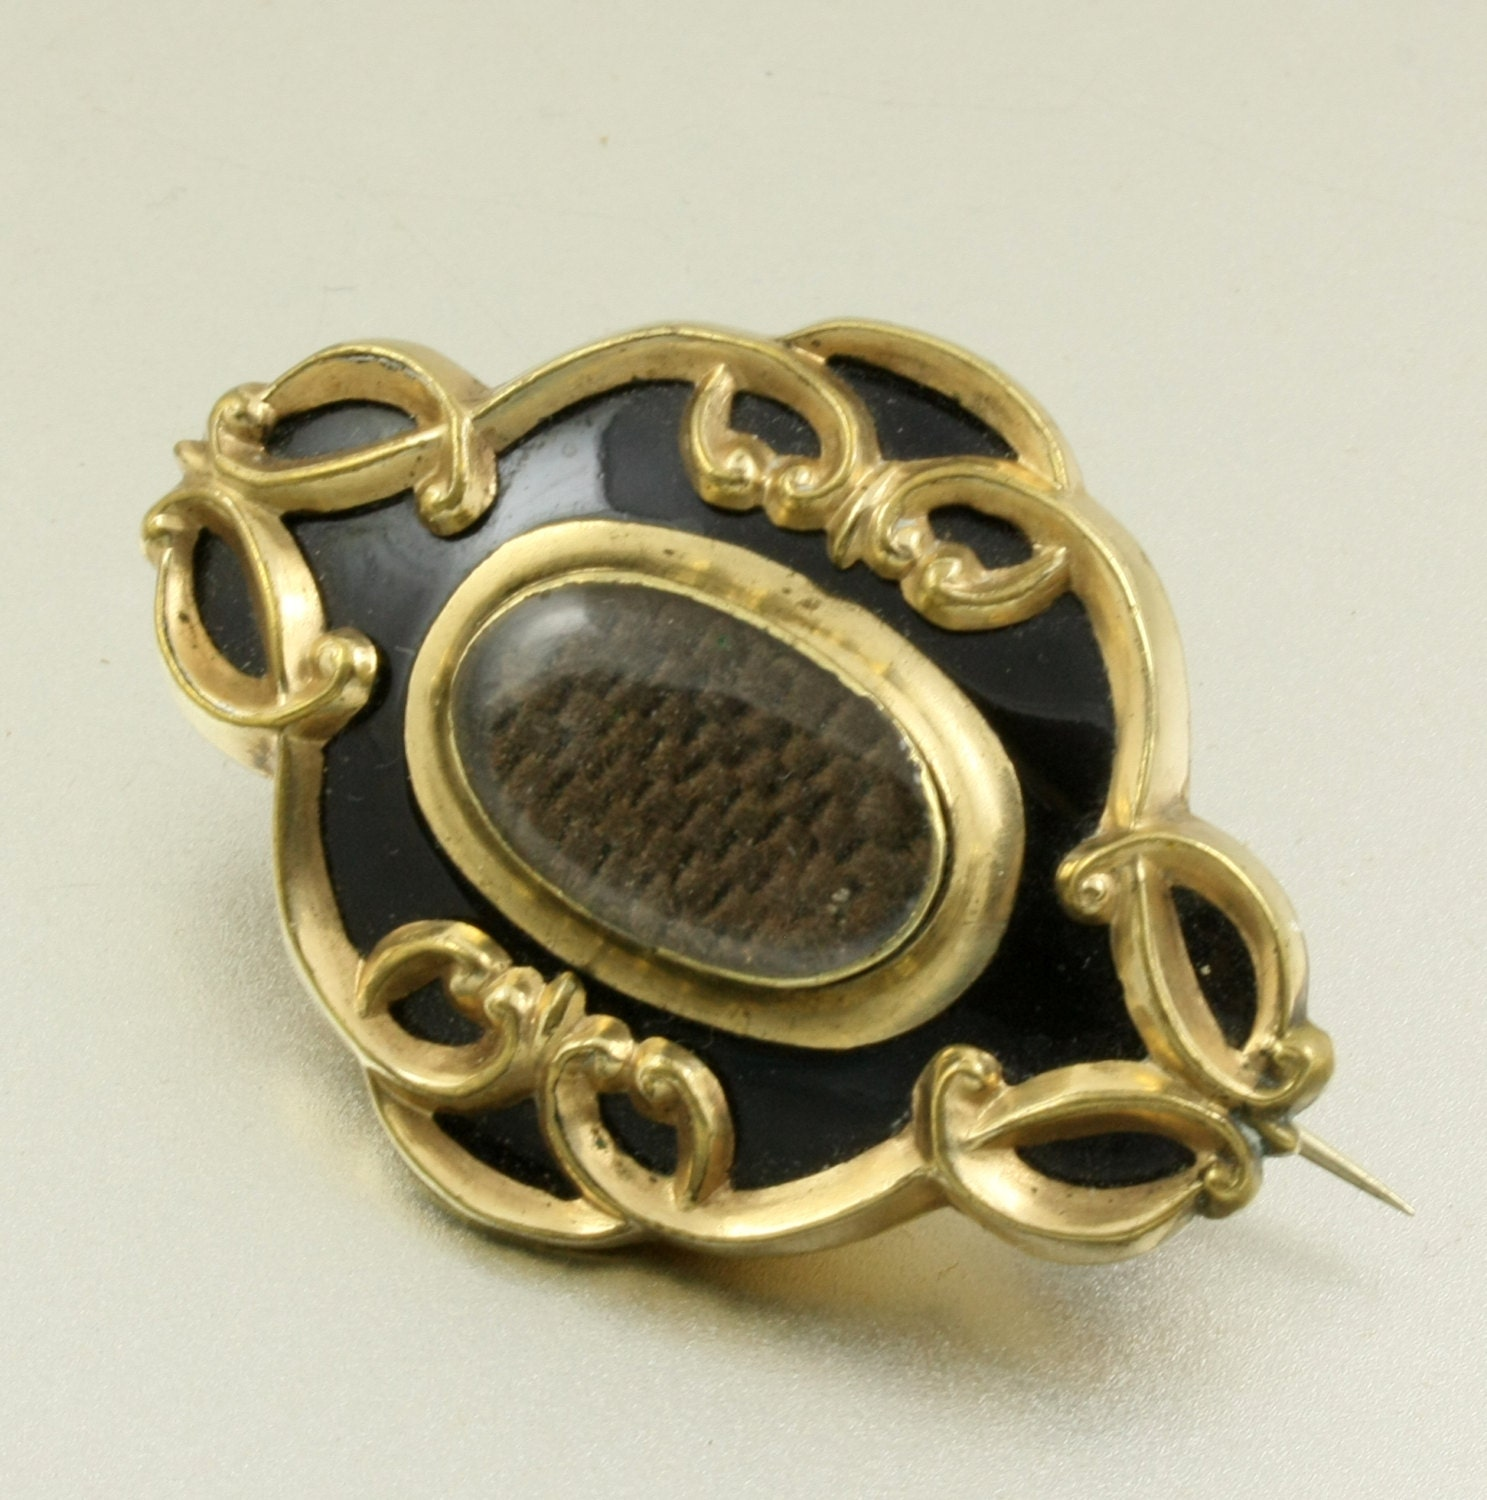 mourning jewelry hair brooch black enamel gold